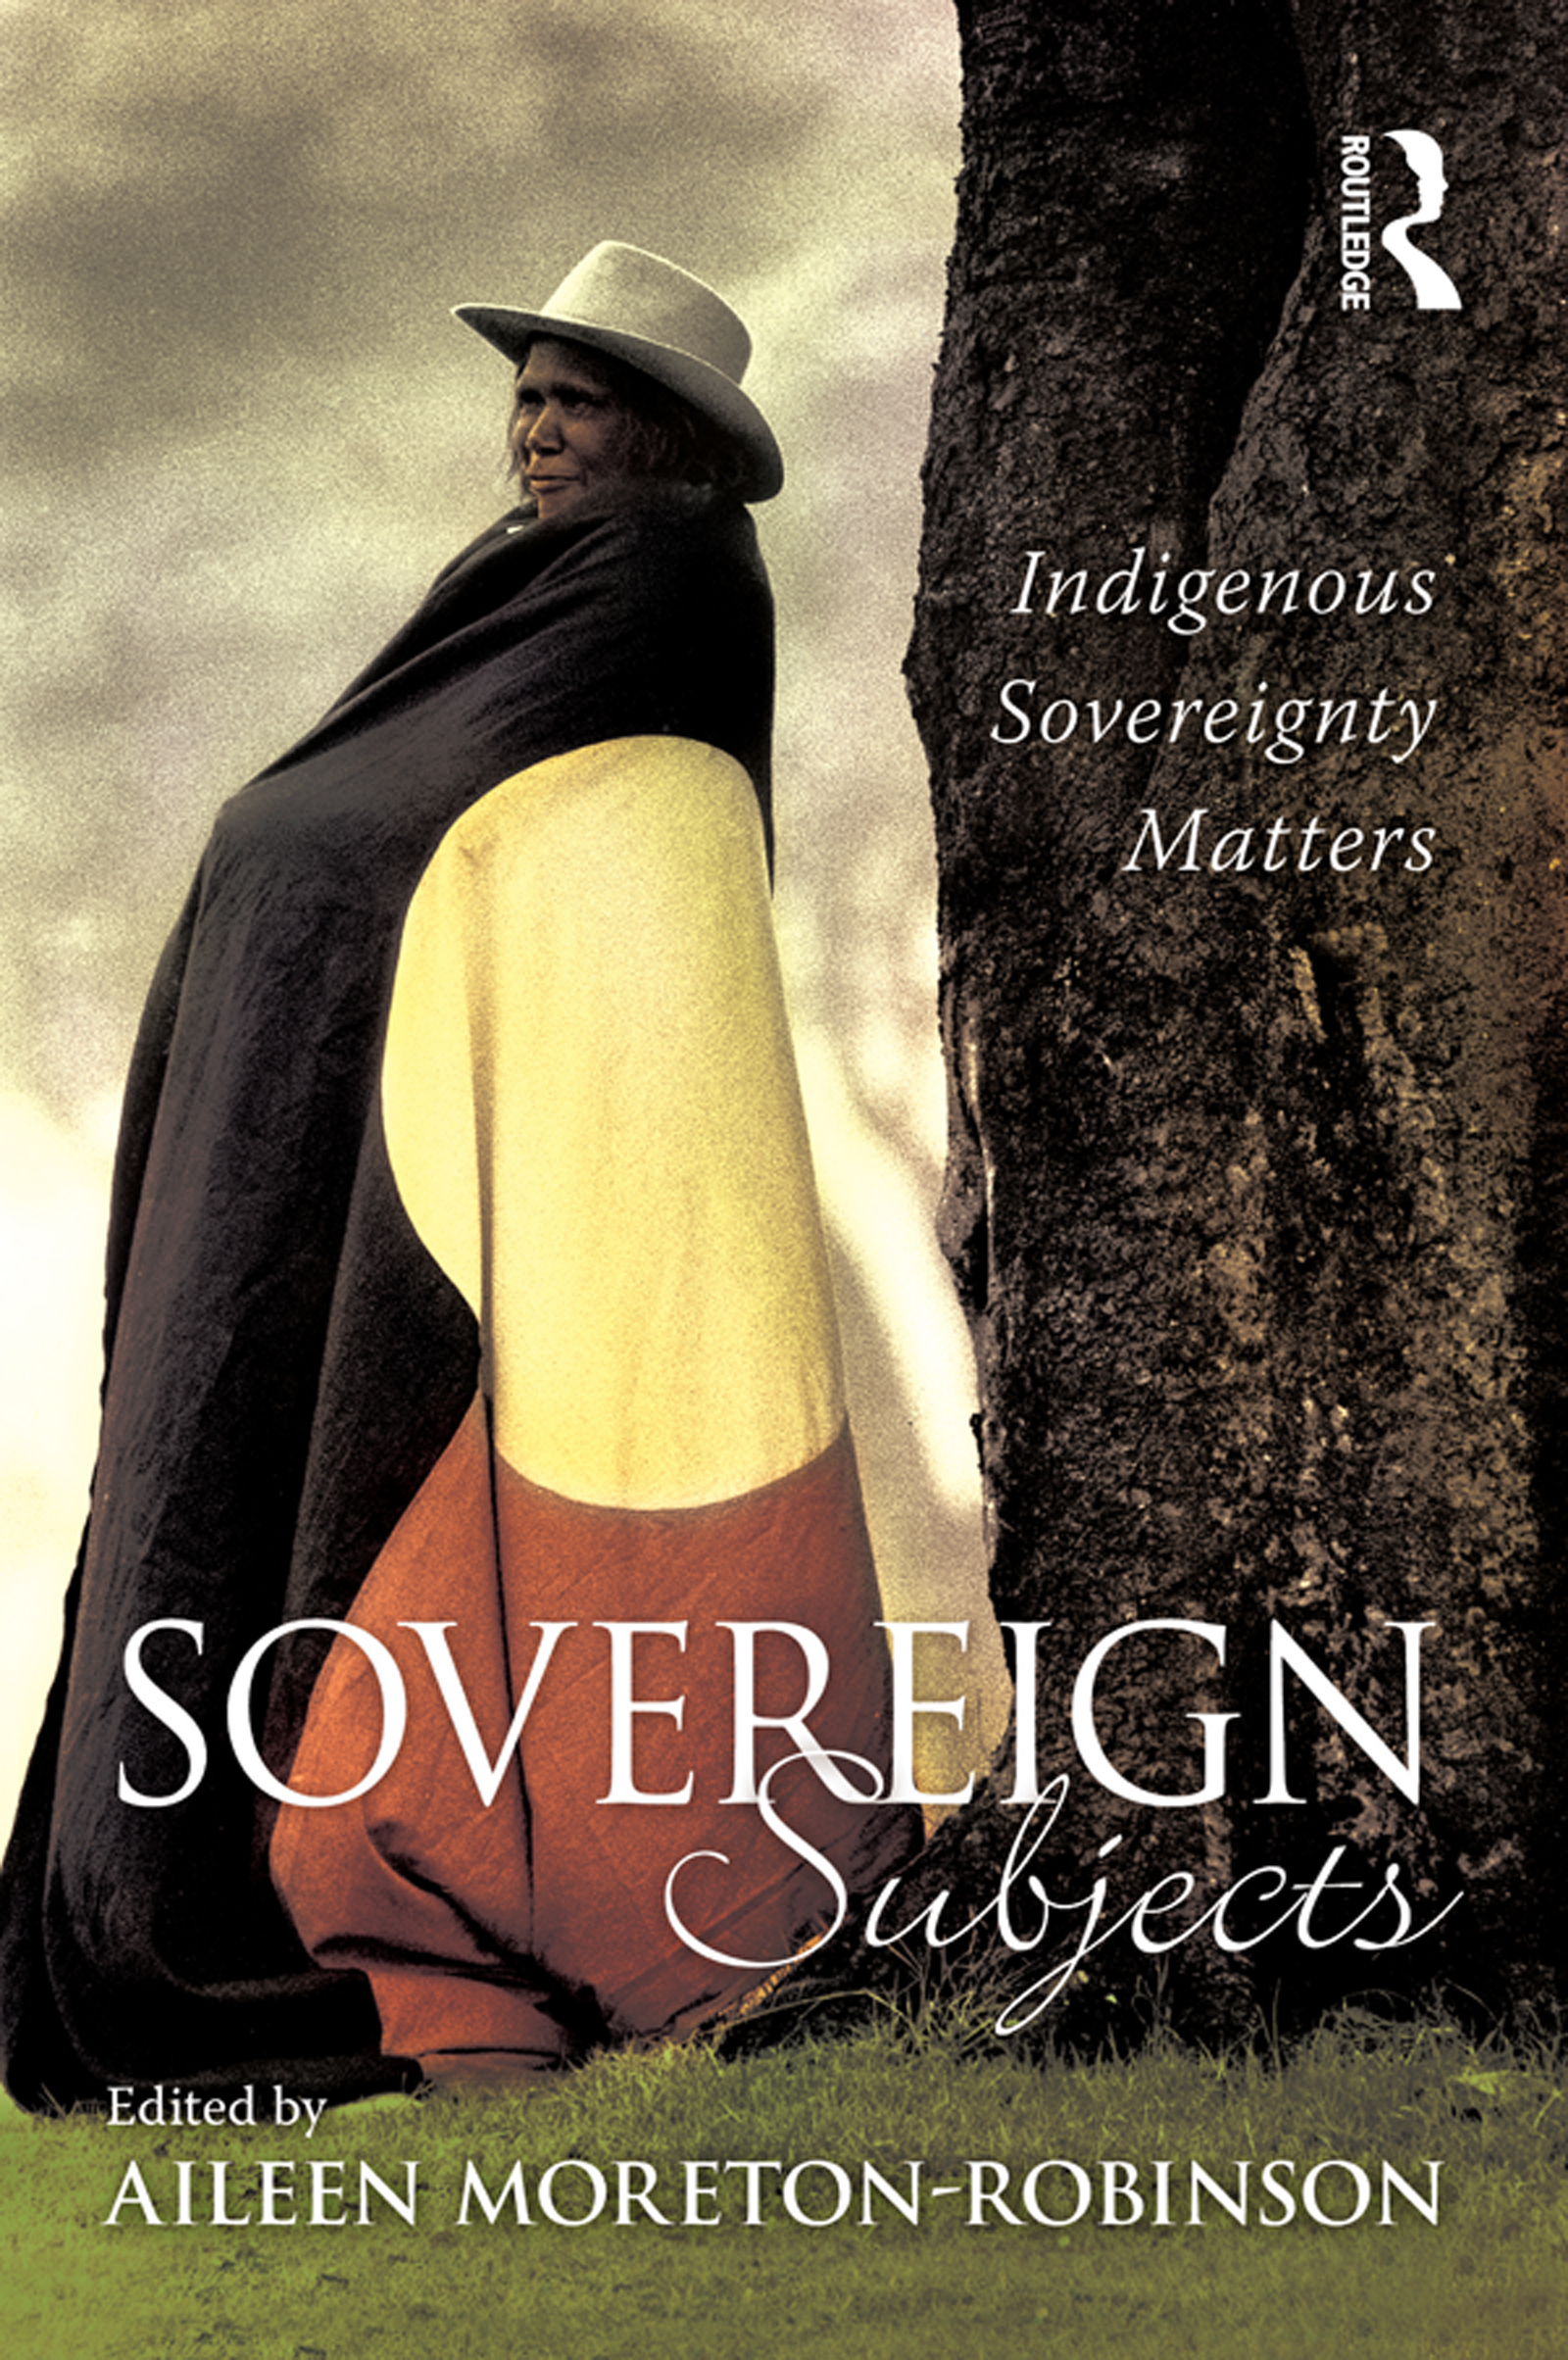 Indigenous sovereignty and the Australian state: Relations in a globalising era